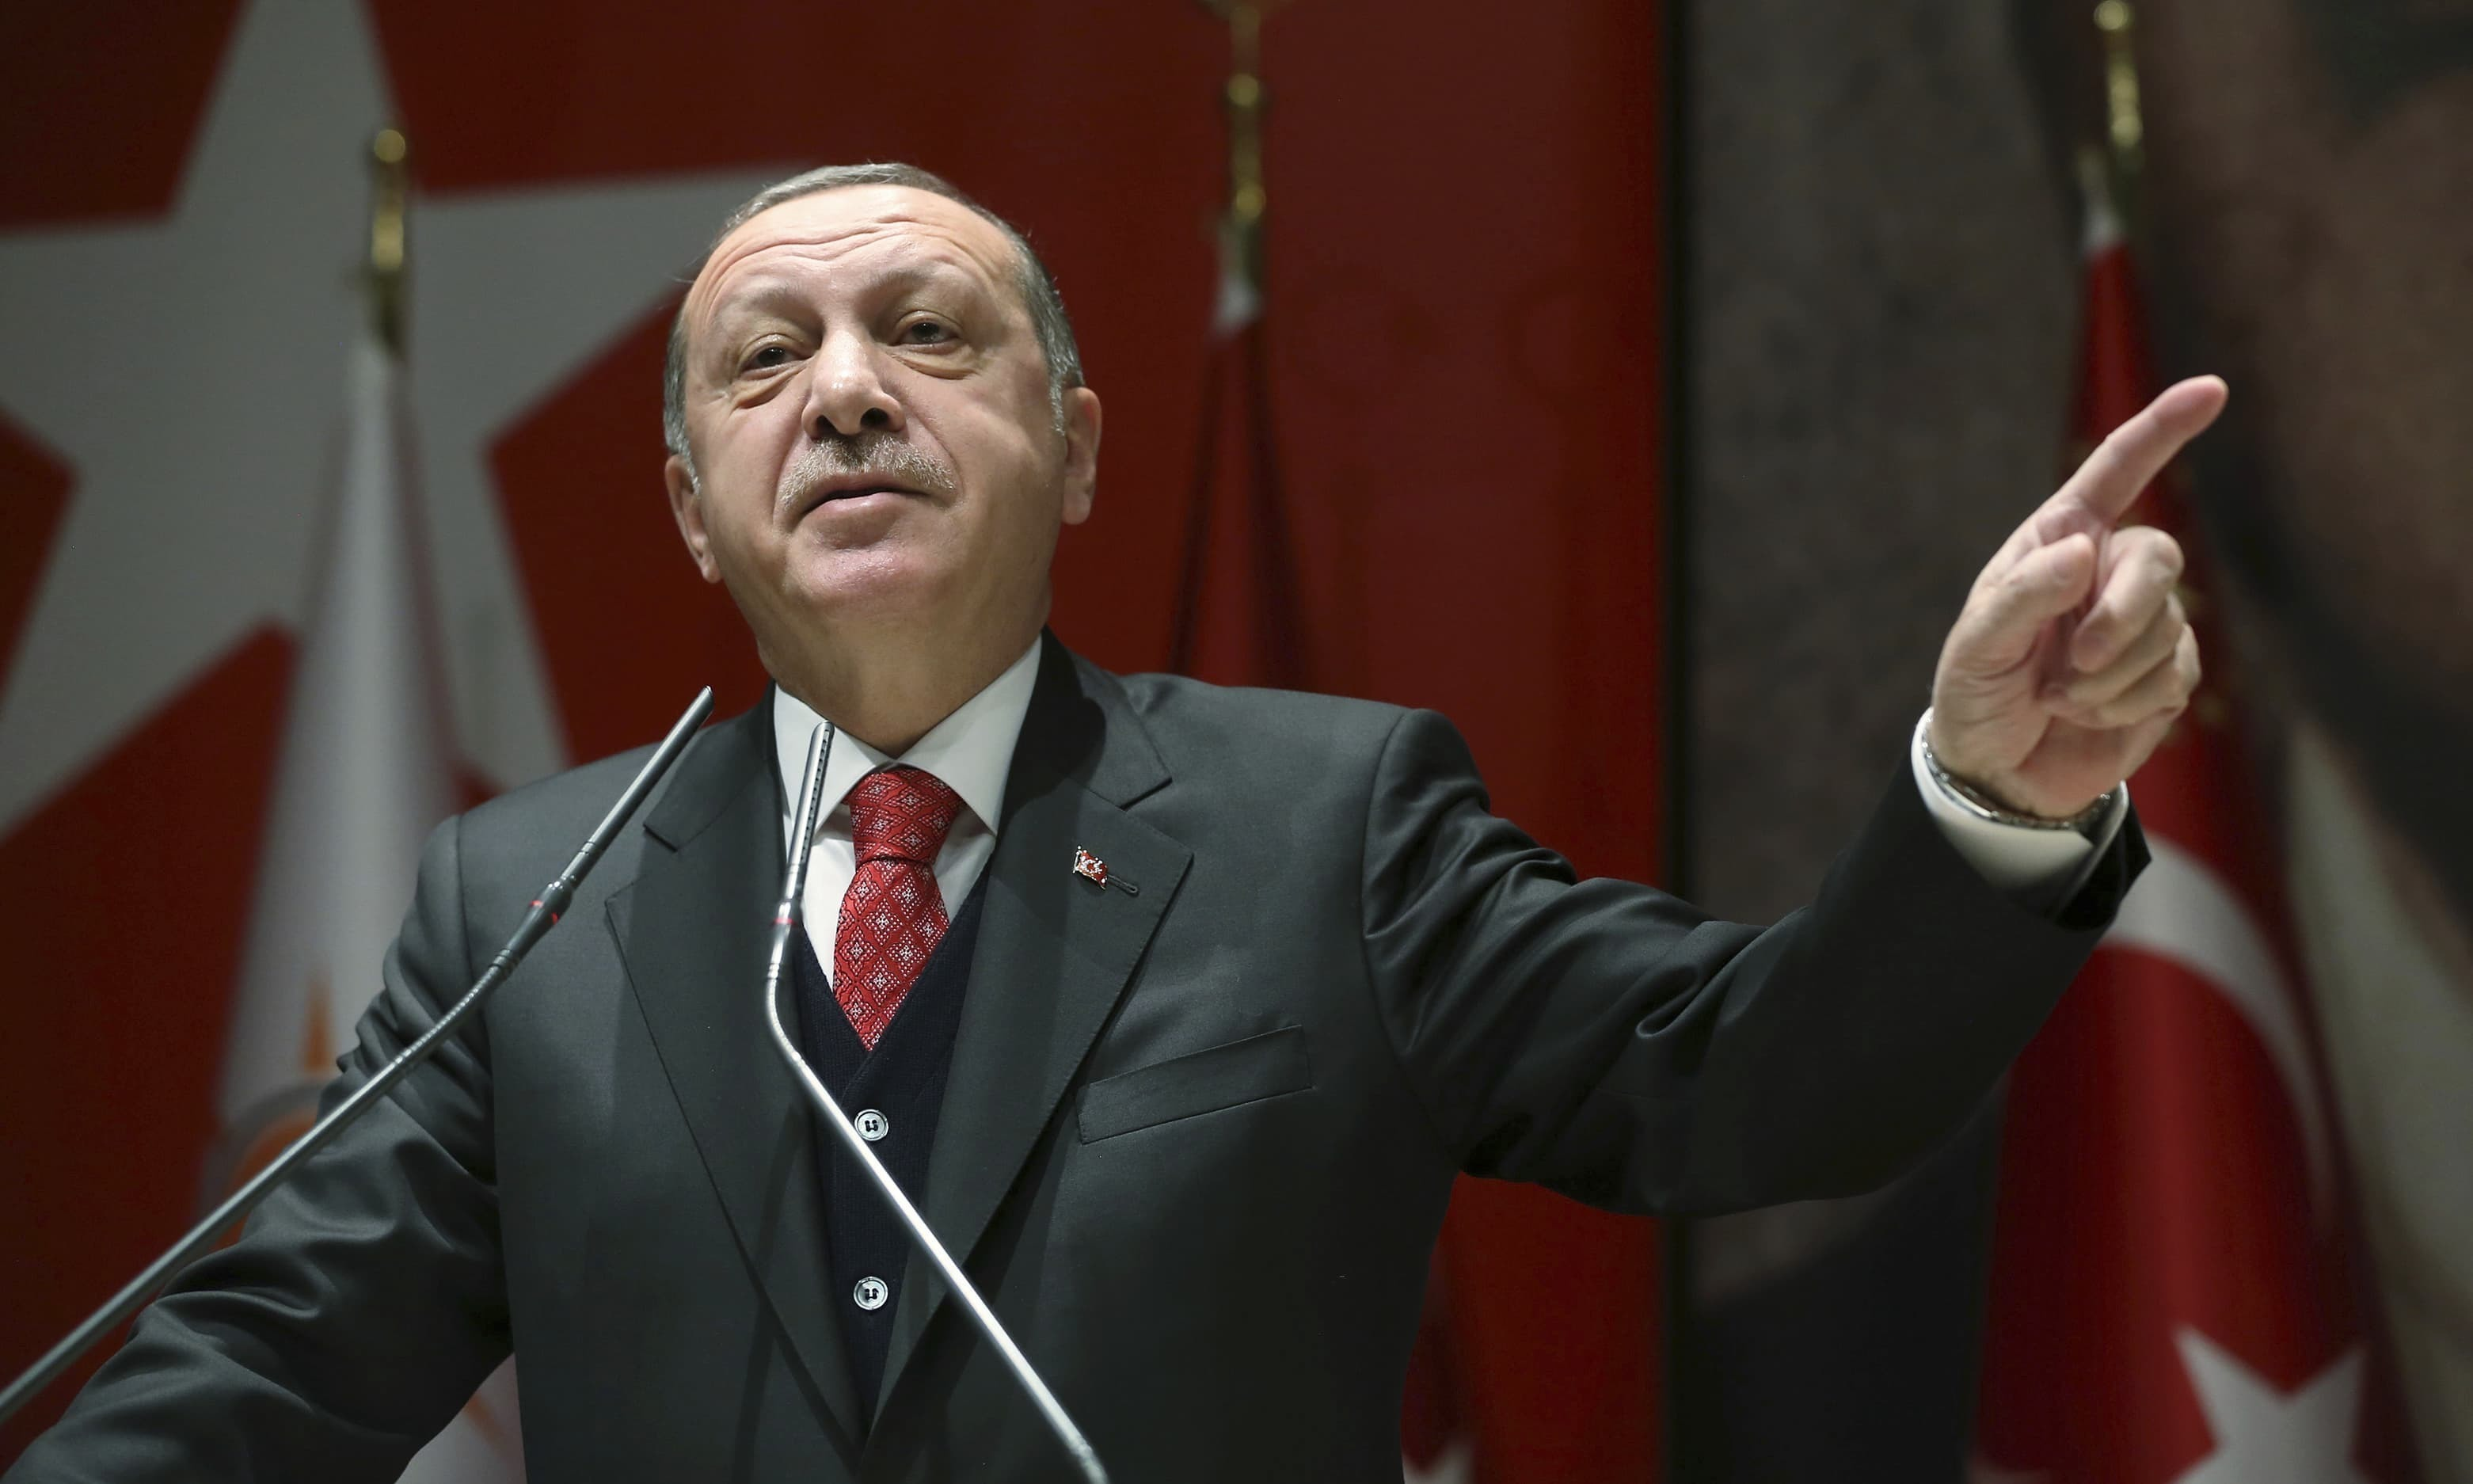 Turkish President Recep Tayyip Erdogan on Saturday said he would hold a summit with the leaders of Russia, France and Germany on March 5 to discuss the escalating violence in Syria's last rebel enclave of Idlib. — AP/File